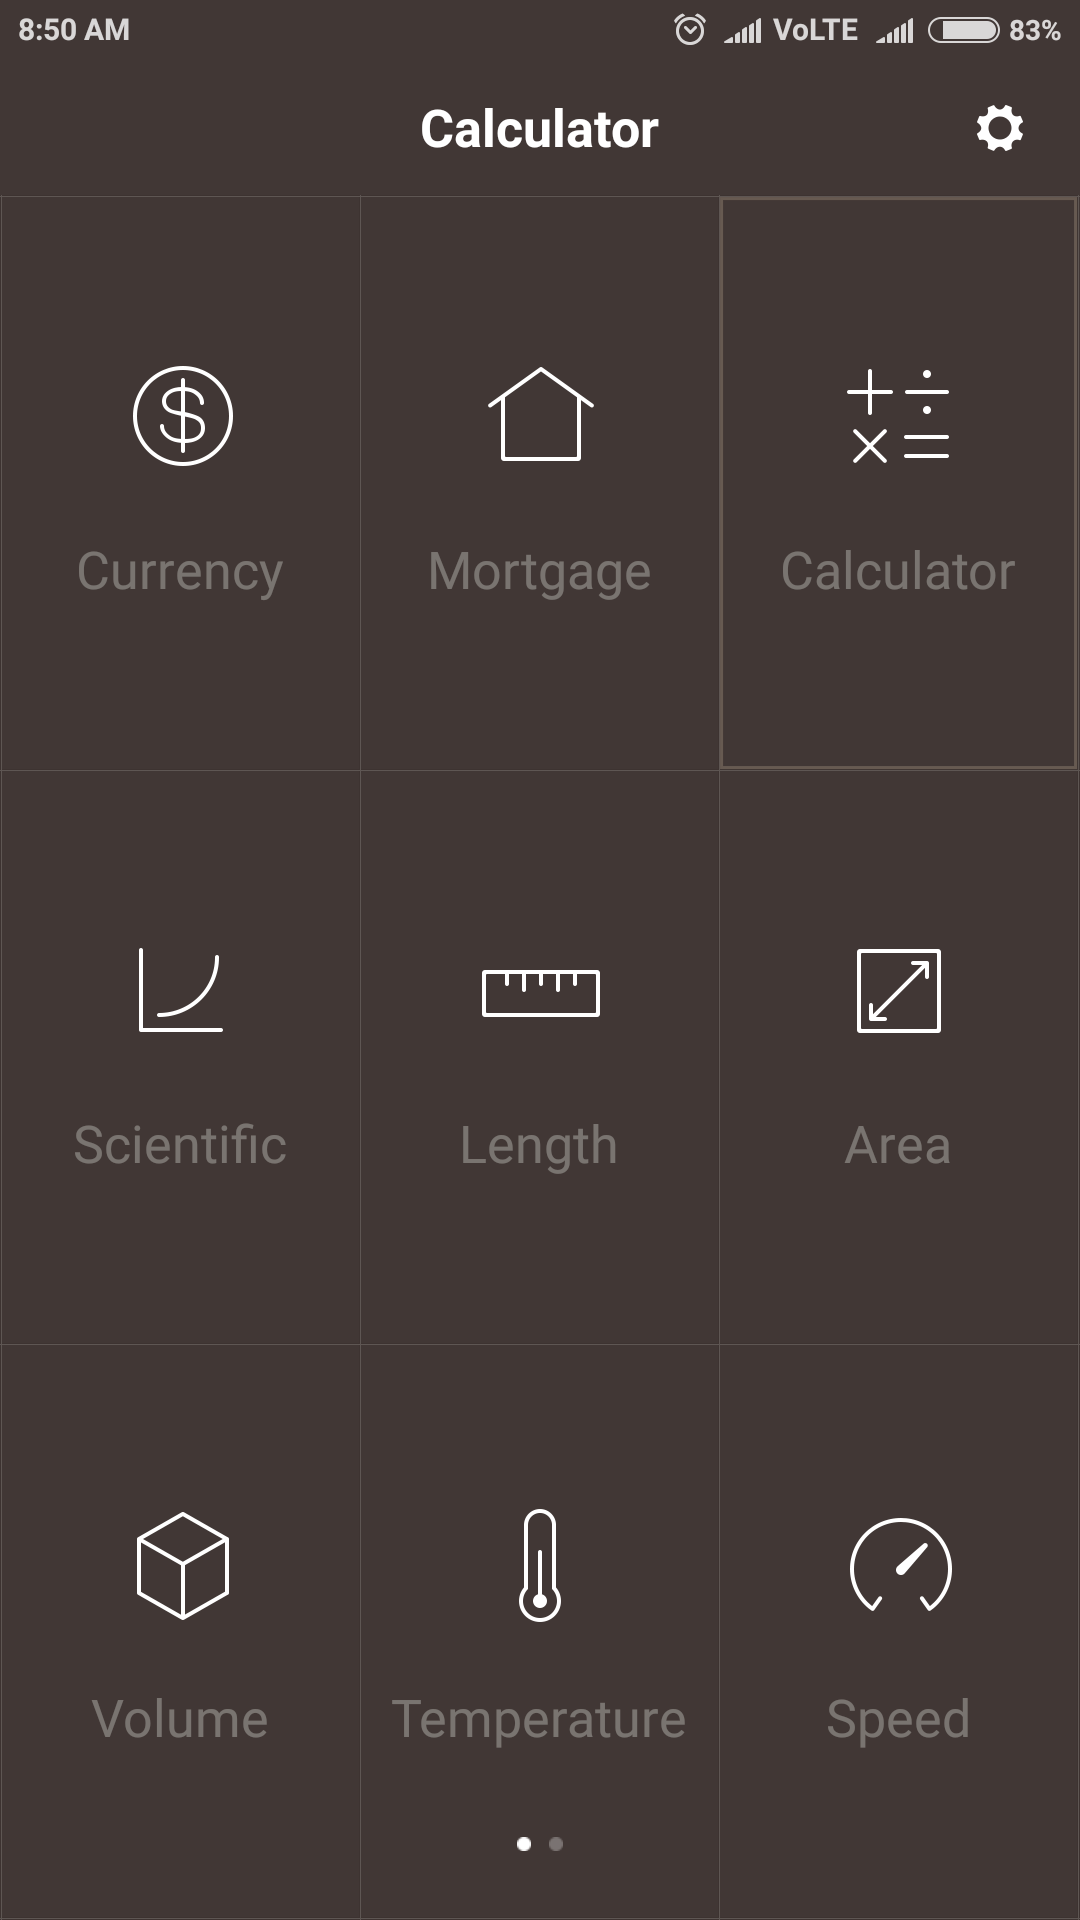 Screenshot_2017-05-02-08-50-43-066_com.miui.calculator.png